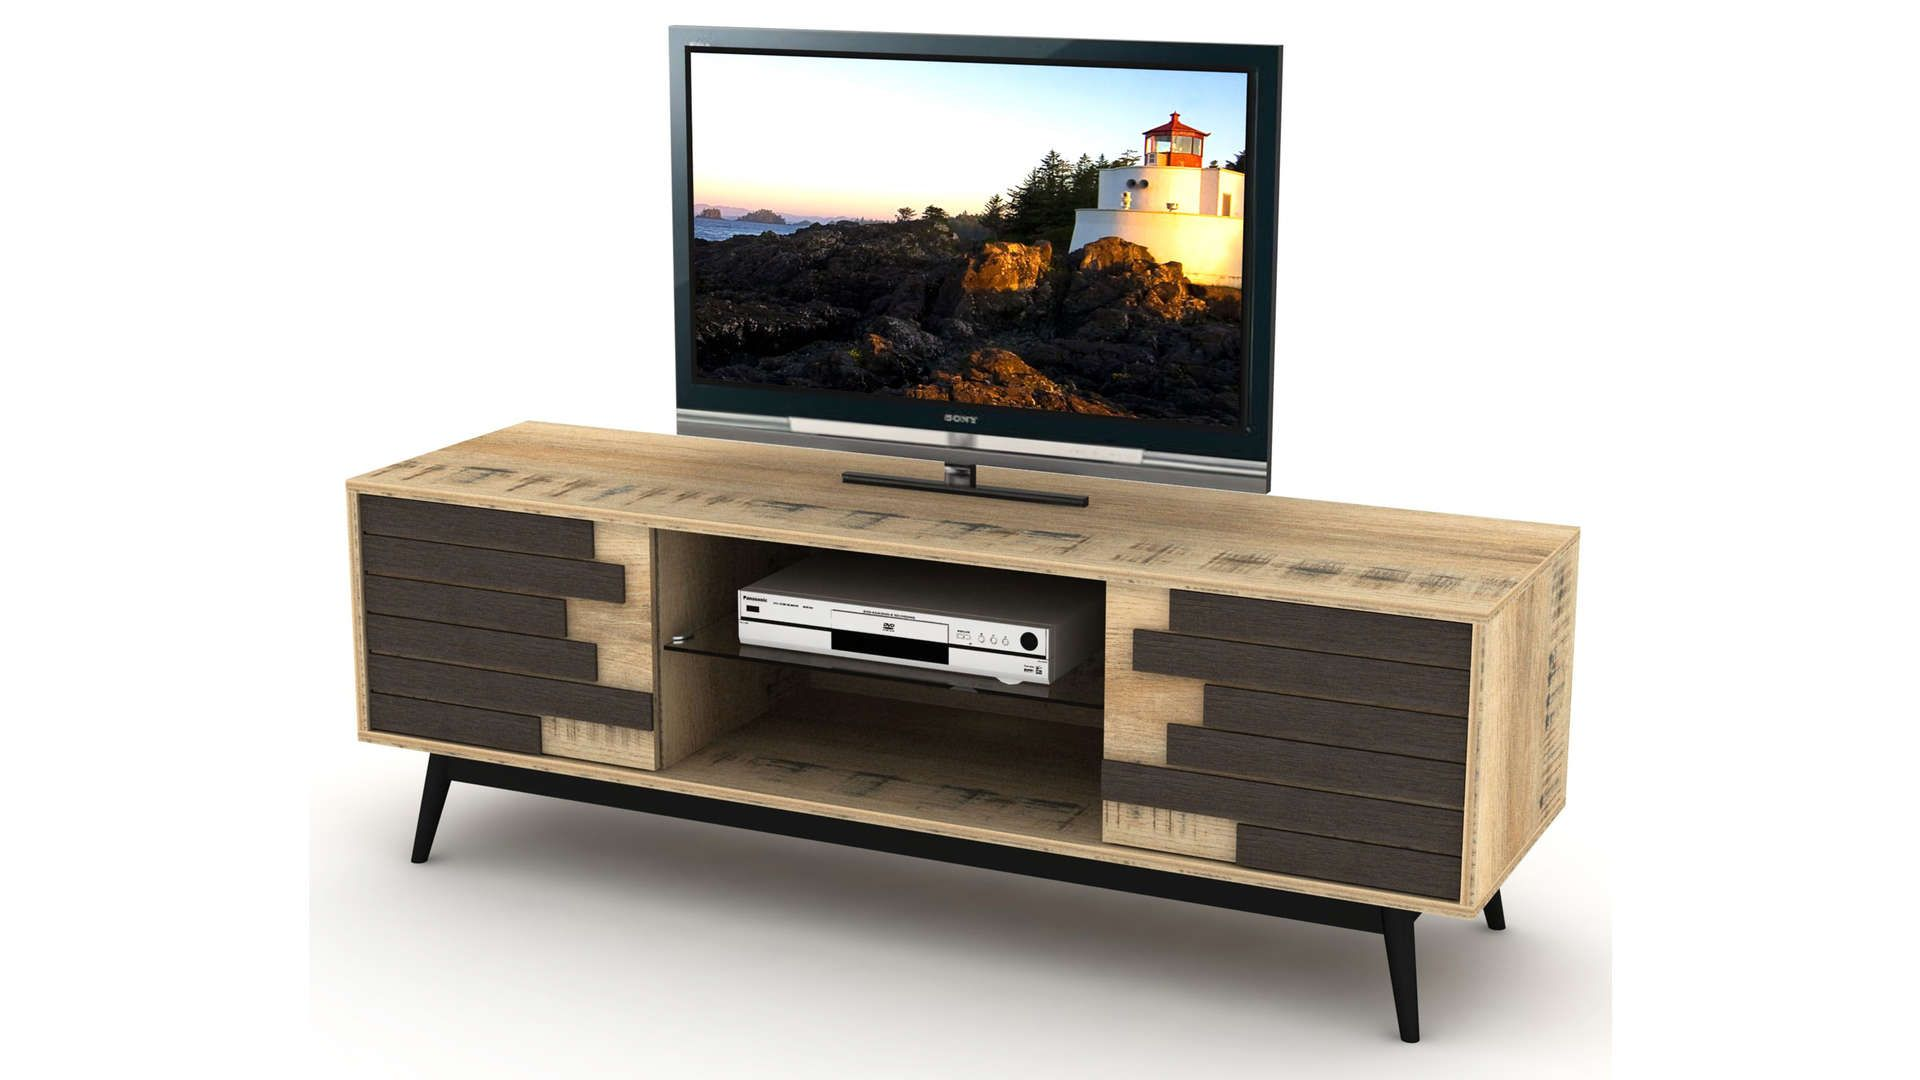 Meuble Tv 140 Cm 565208 En 2020 Meuble Tv Meuble Tv Conforama Decoration Salon